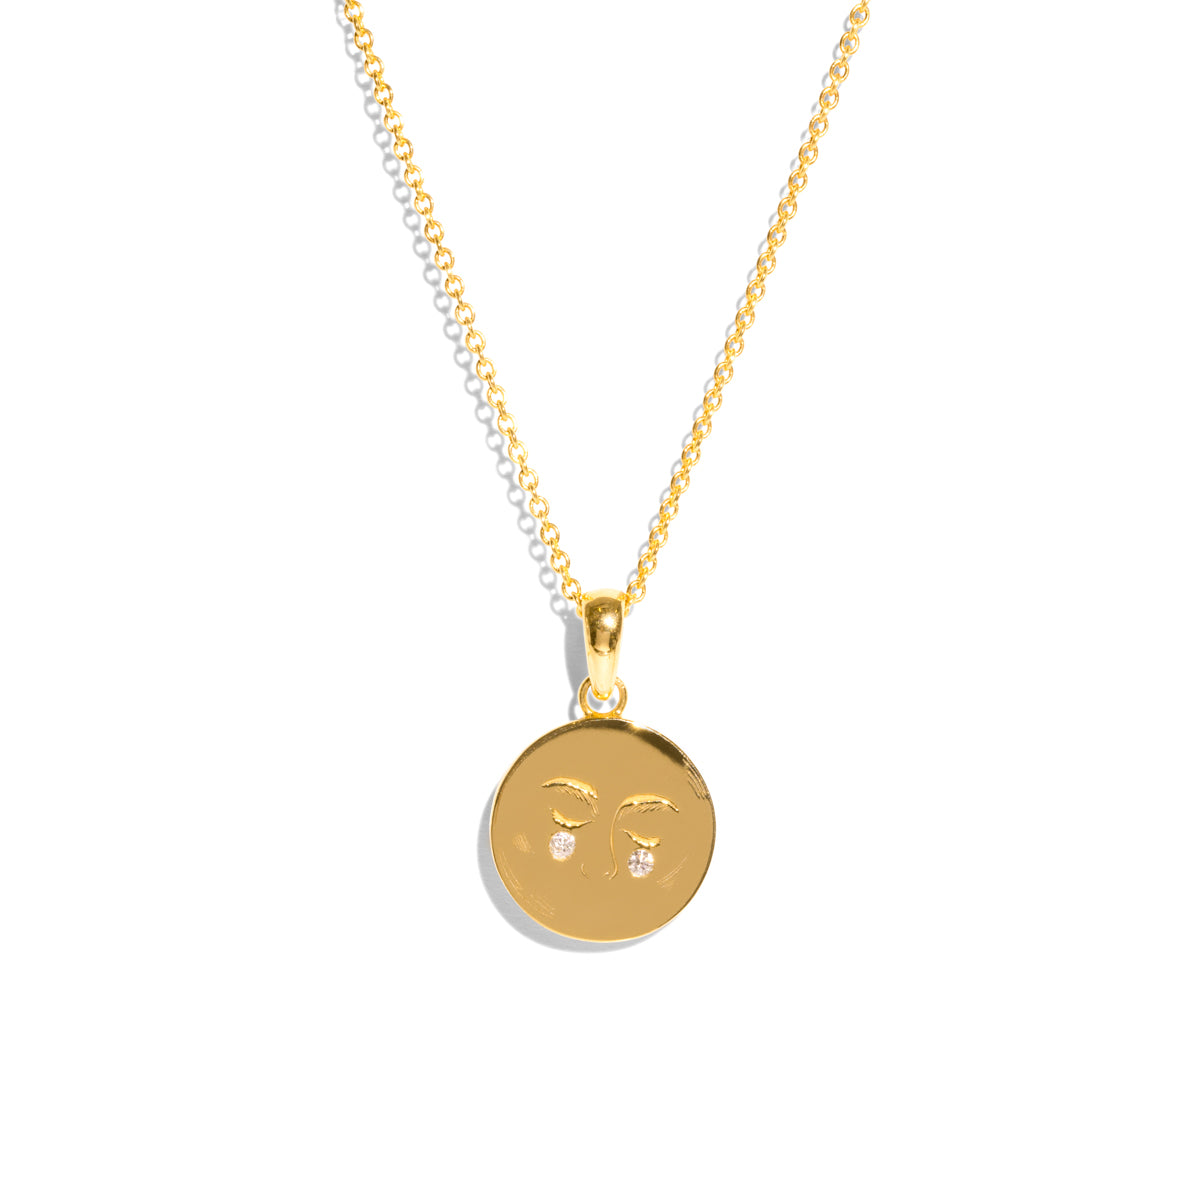 The Gold Diamond Moon Child Pendant Necklace